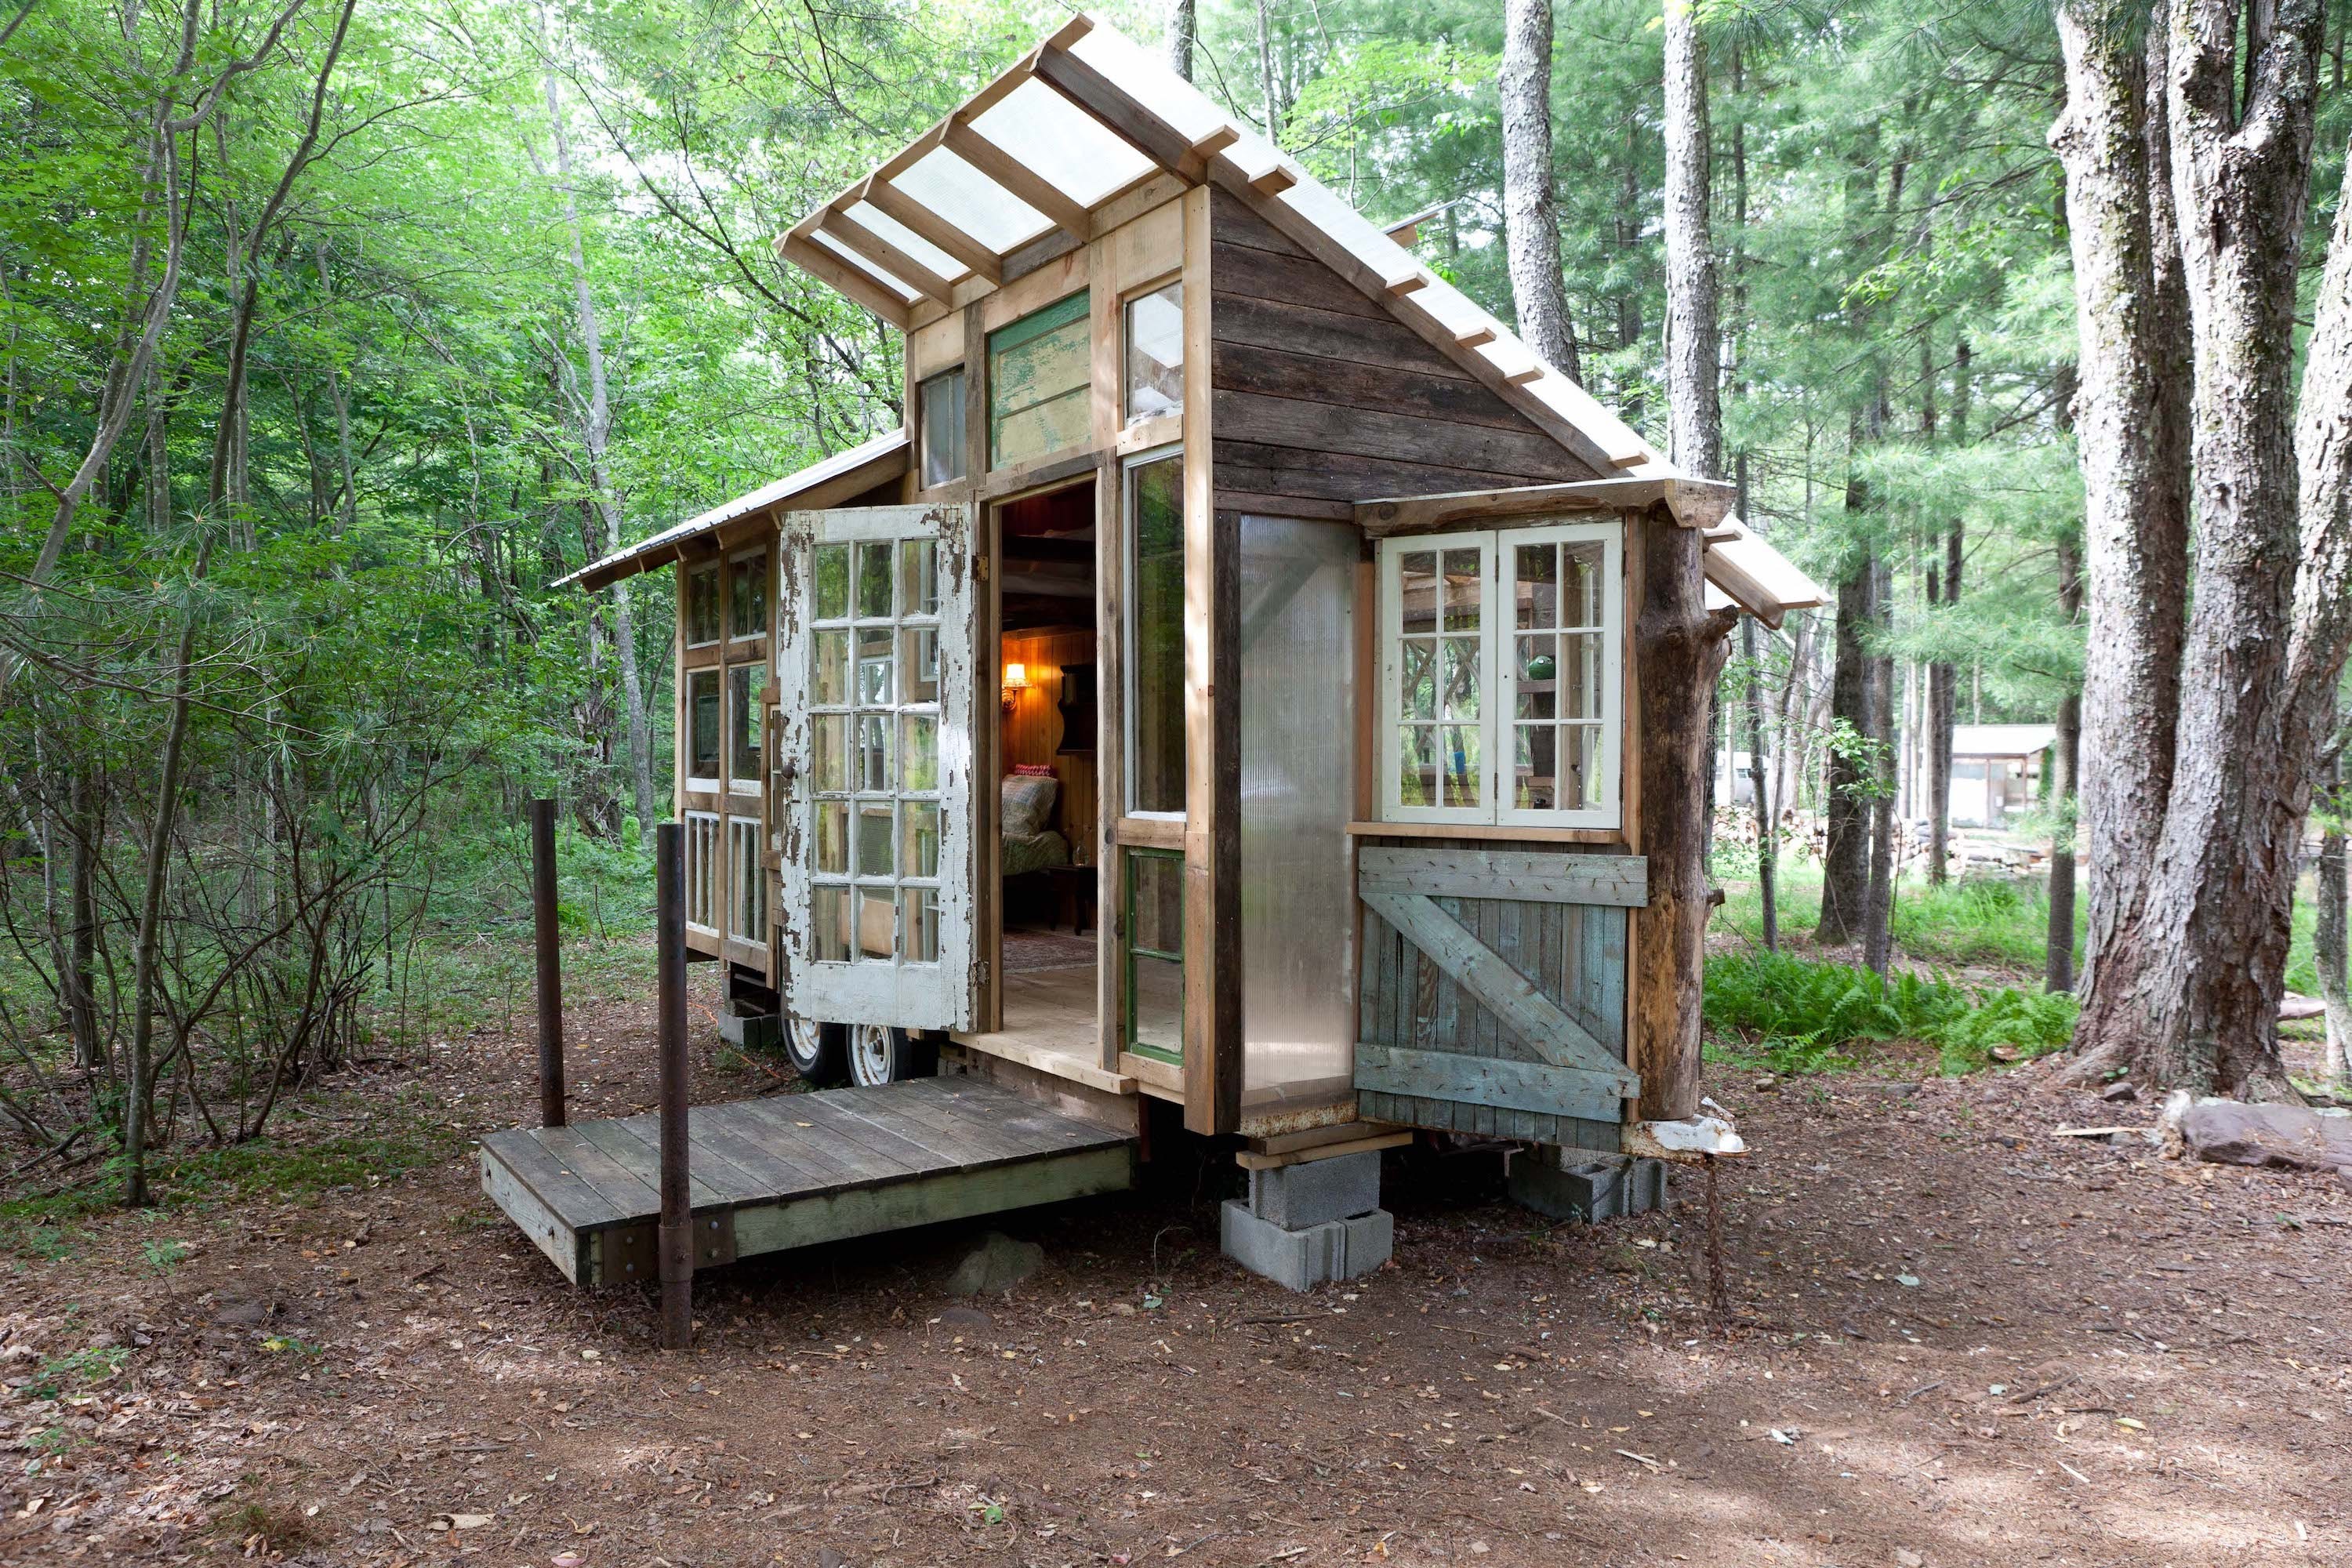 Tremendous Best Tiny Houses To Rent On Airbnb In The World 2019 Best Image Libraries Weasiibadanjobscom